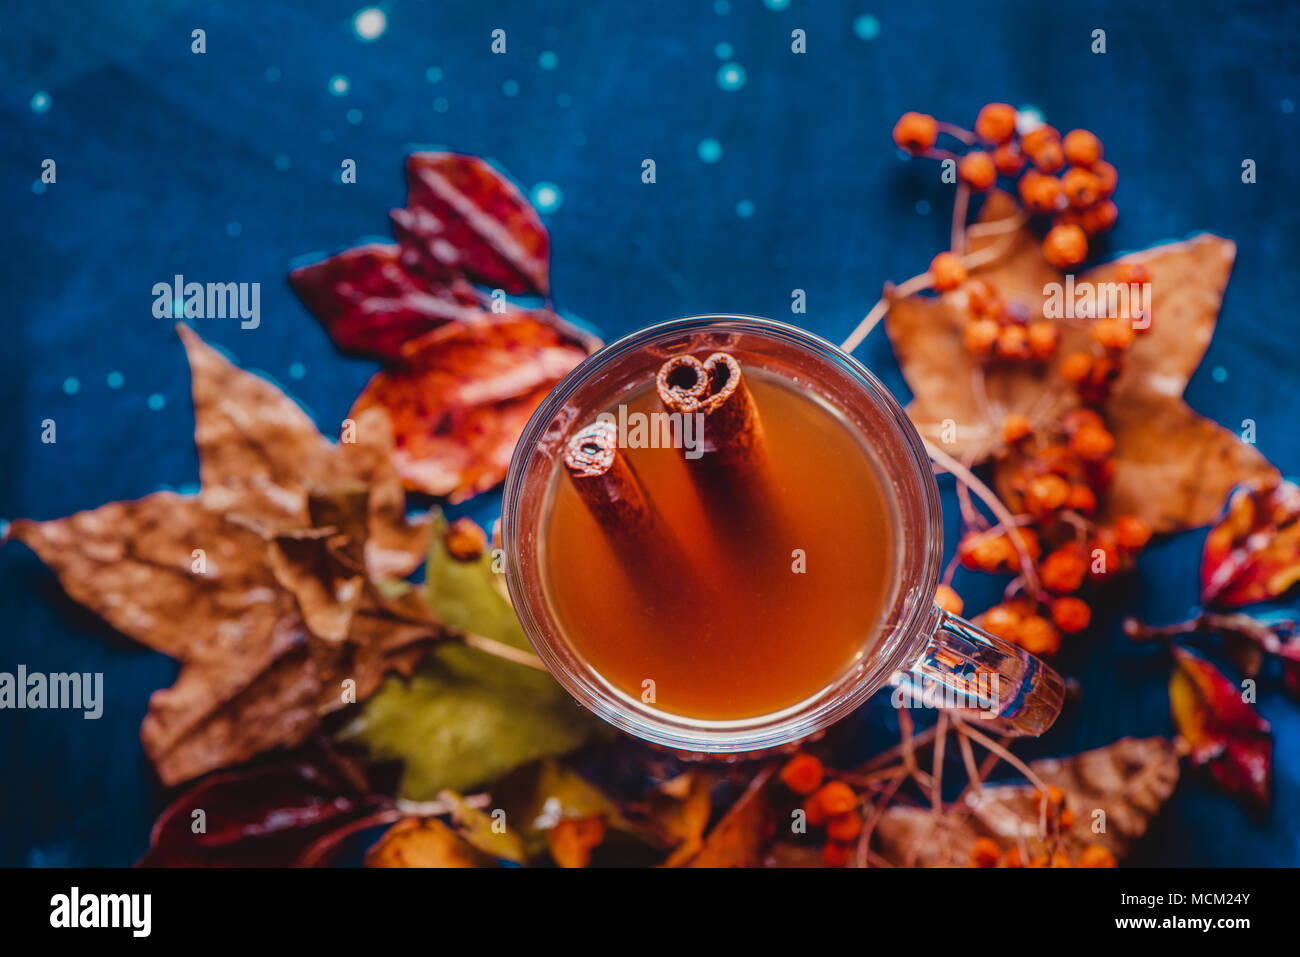 Cinnamon tea flat lay with fallen leaves. Glass tea cup on a wet wooden background with copy space. Autumn still life with herbal beverage. - Stock Image